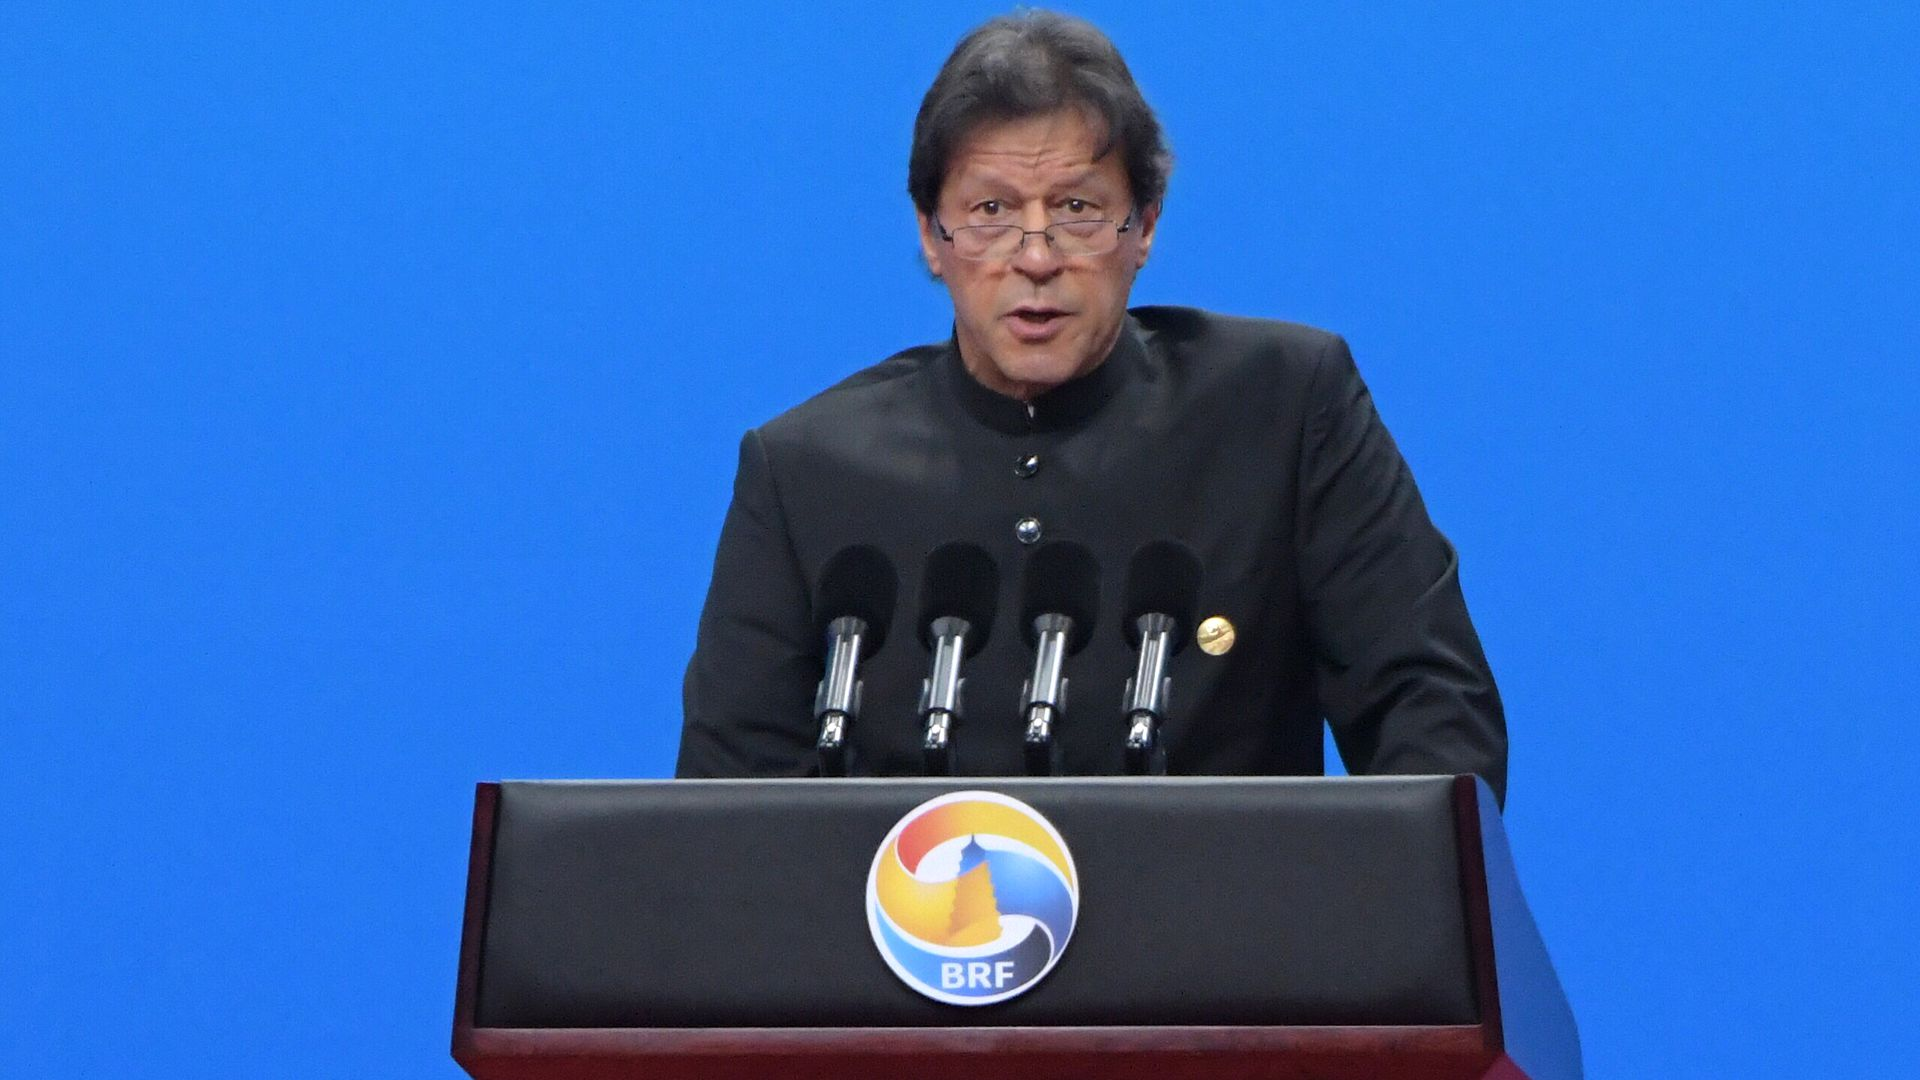 Imran Khan speaking at a lectern